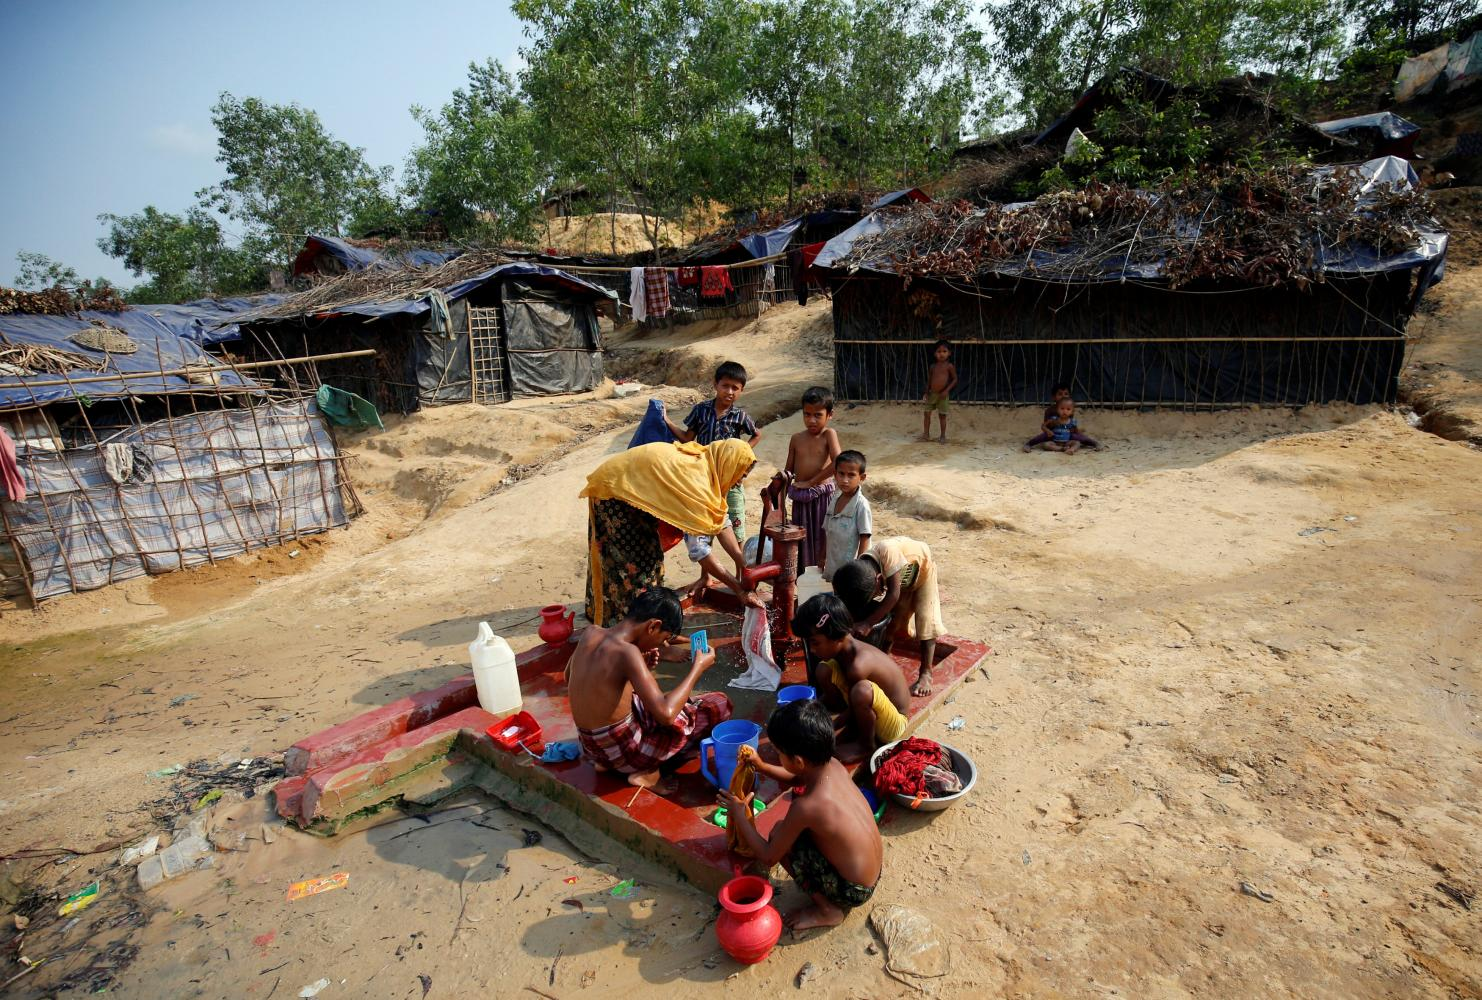 Family ties keep hopes alive in Bangladesh camps